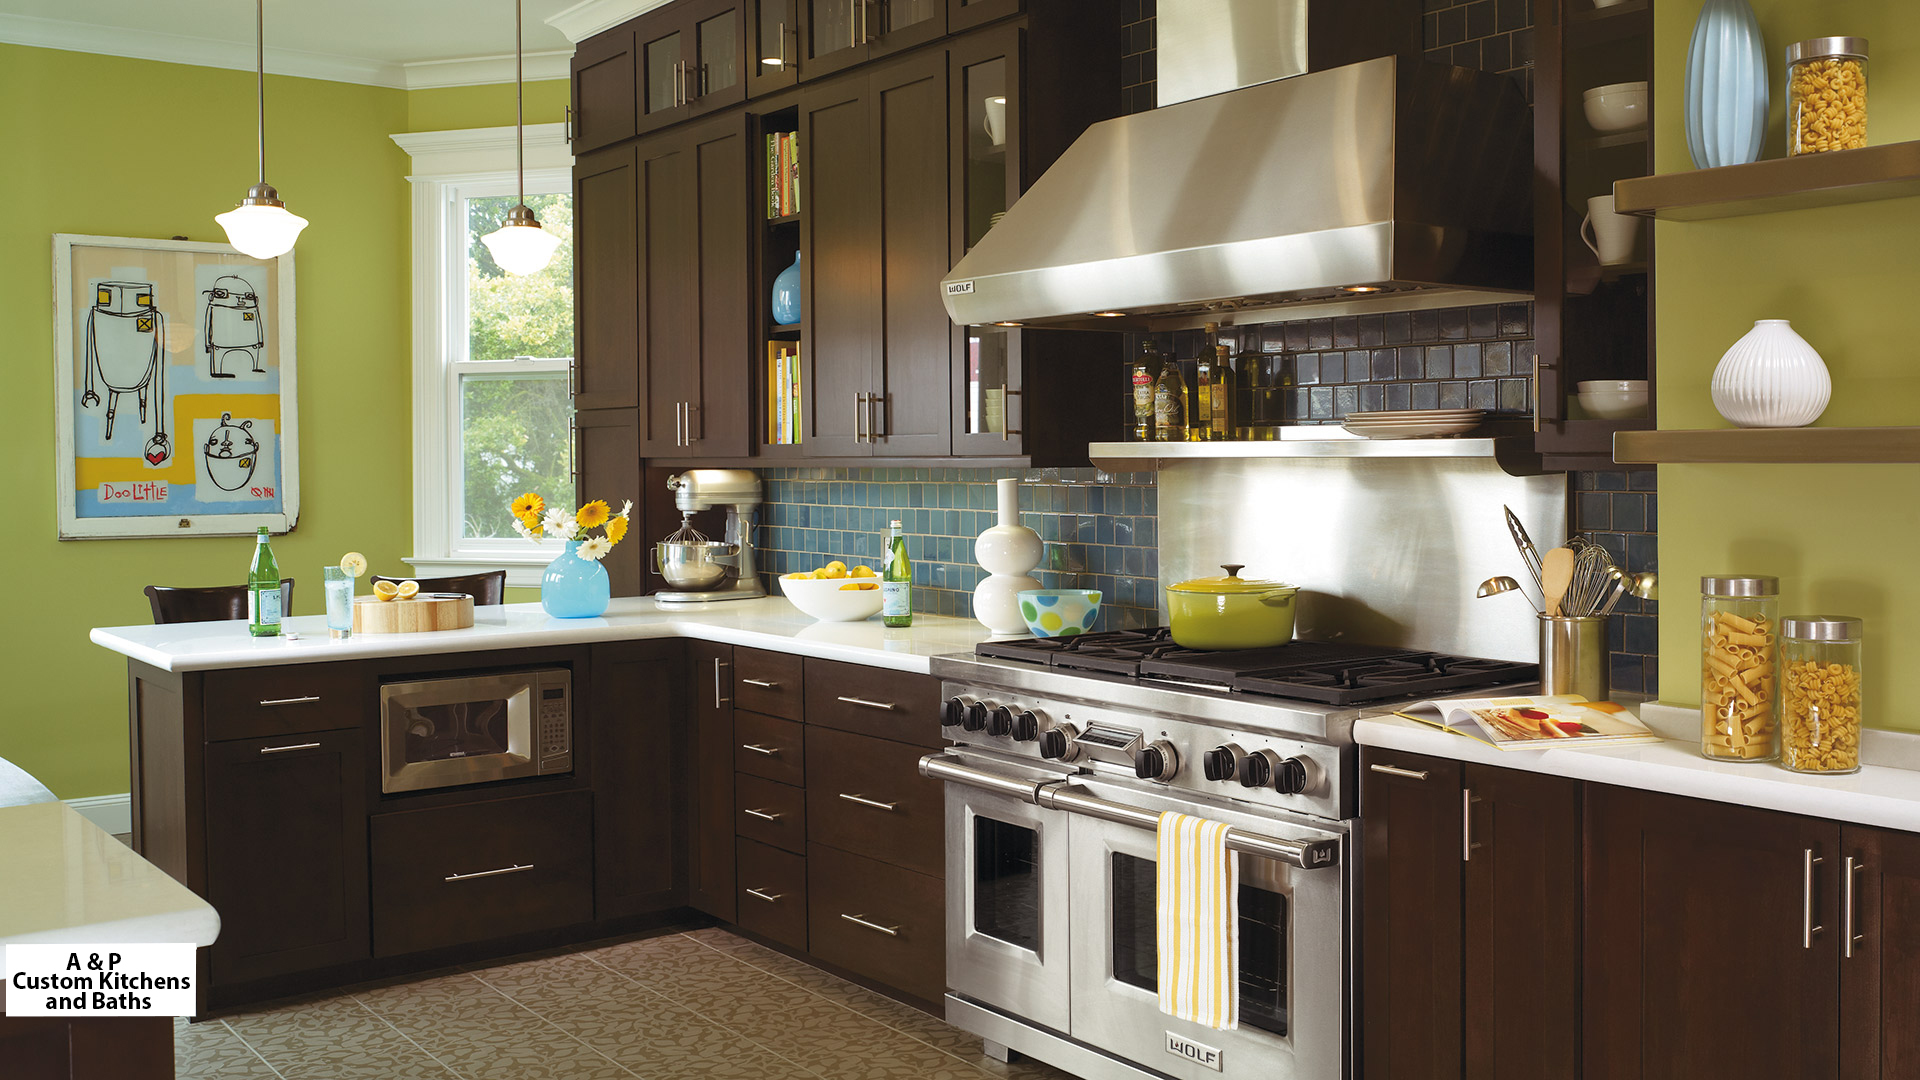 OMEGA CABINETS - A&P Kitchens